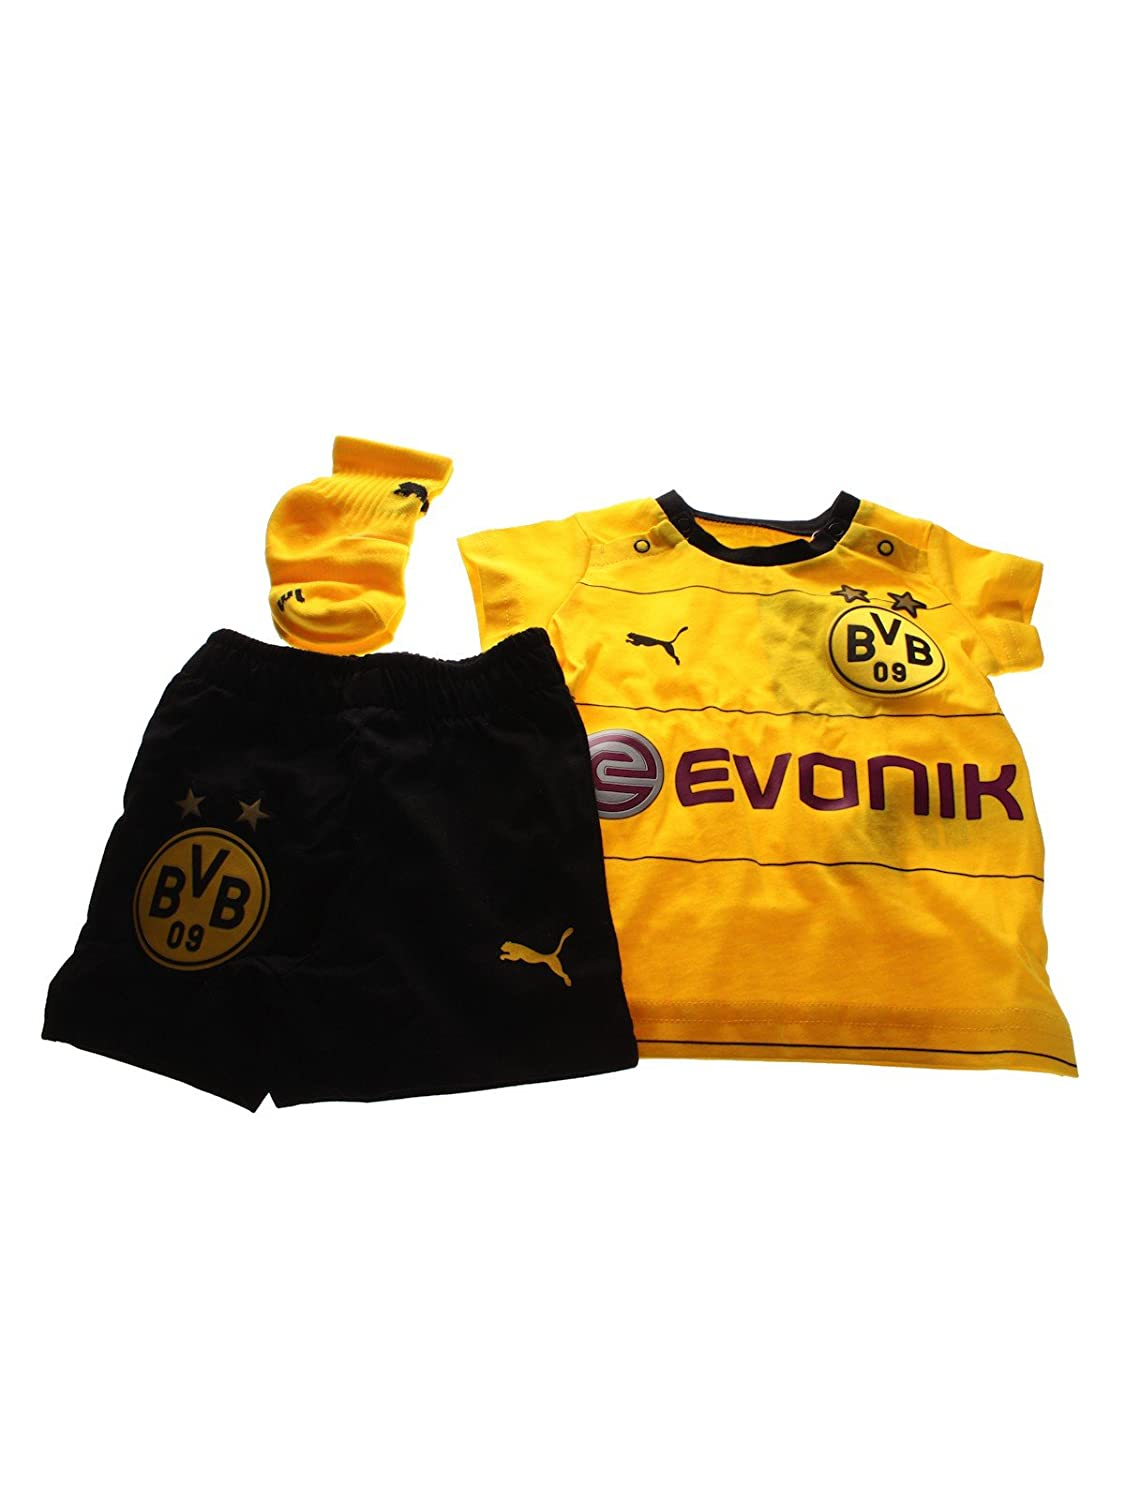 PUMA Baby Set BVB Home Babykit with Socks und Sponsor